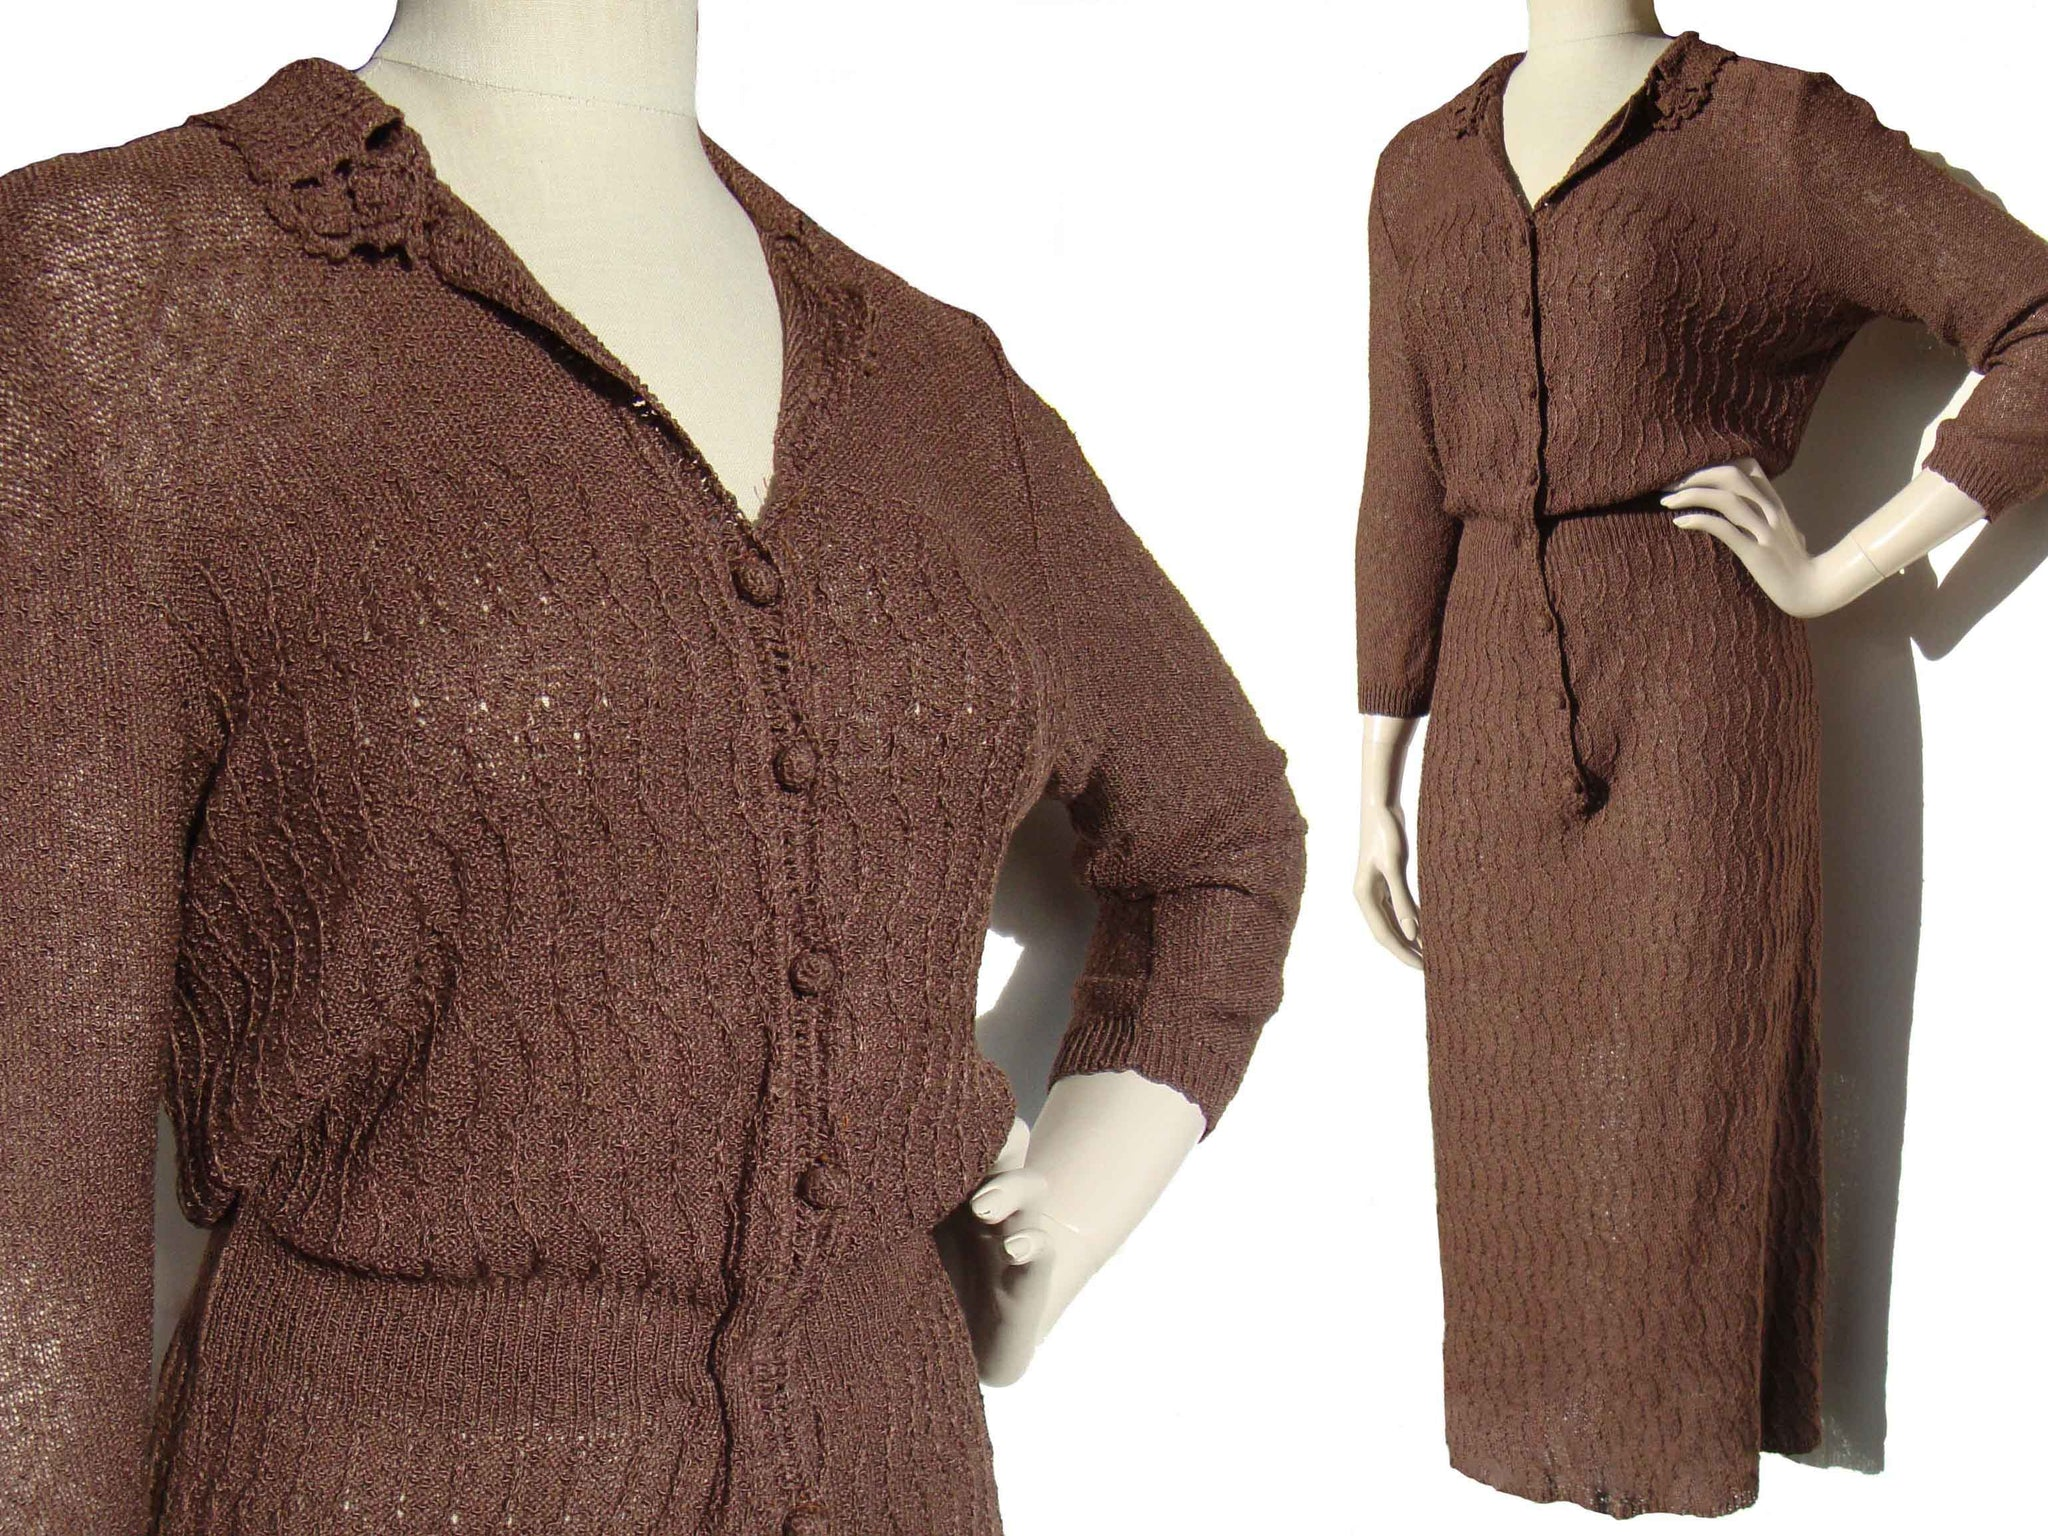 Vintage 50s Dress Glengyle Knitwear Taupe Brown M